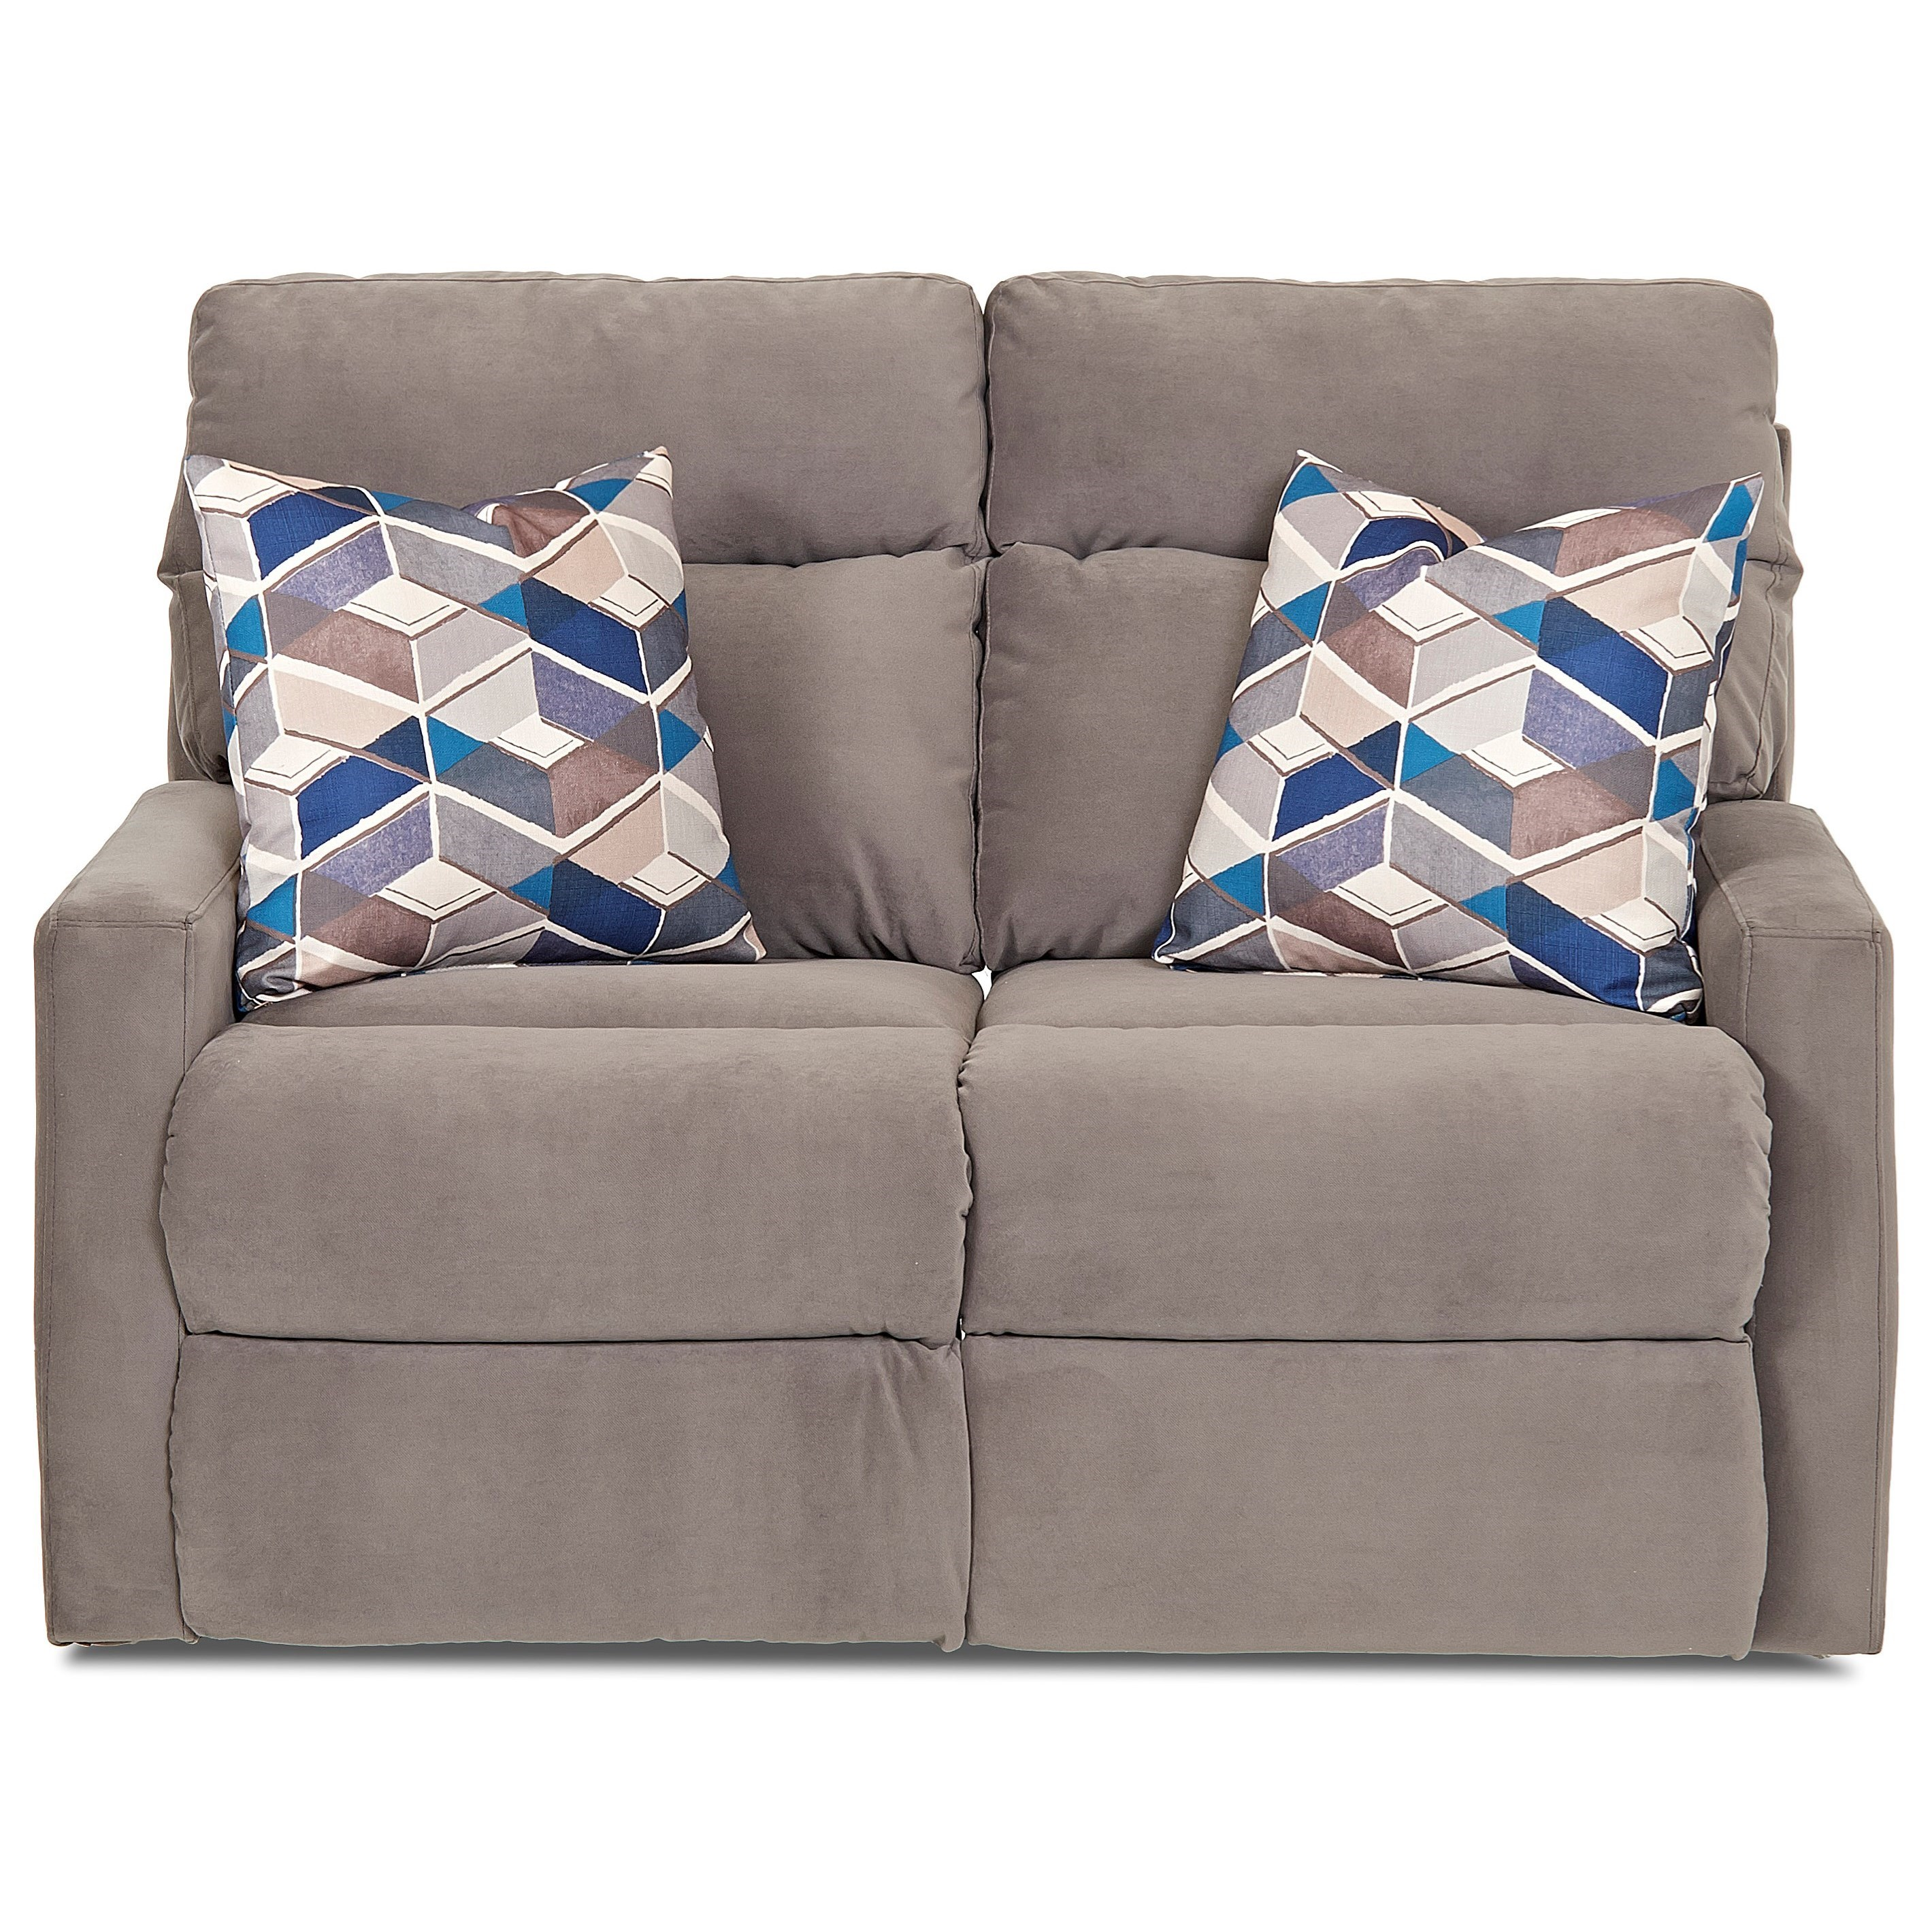 Power Reclining Loveseat w/ Pillows